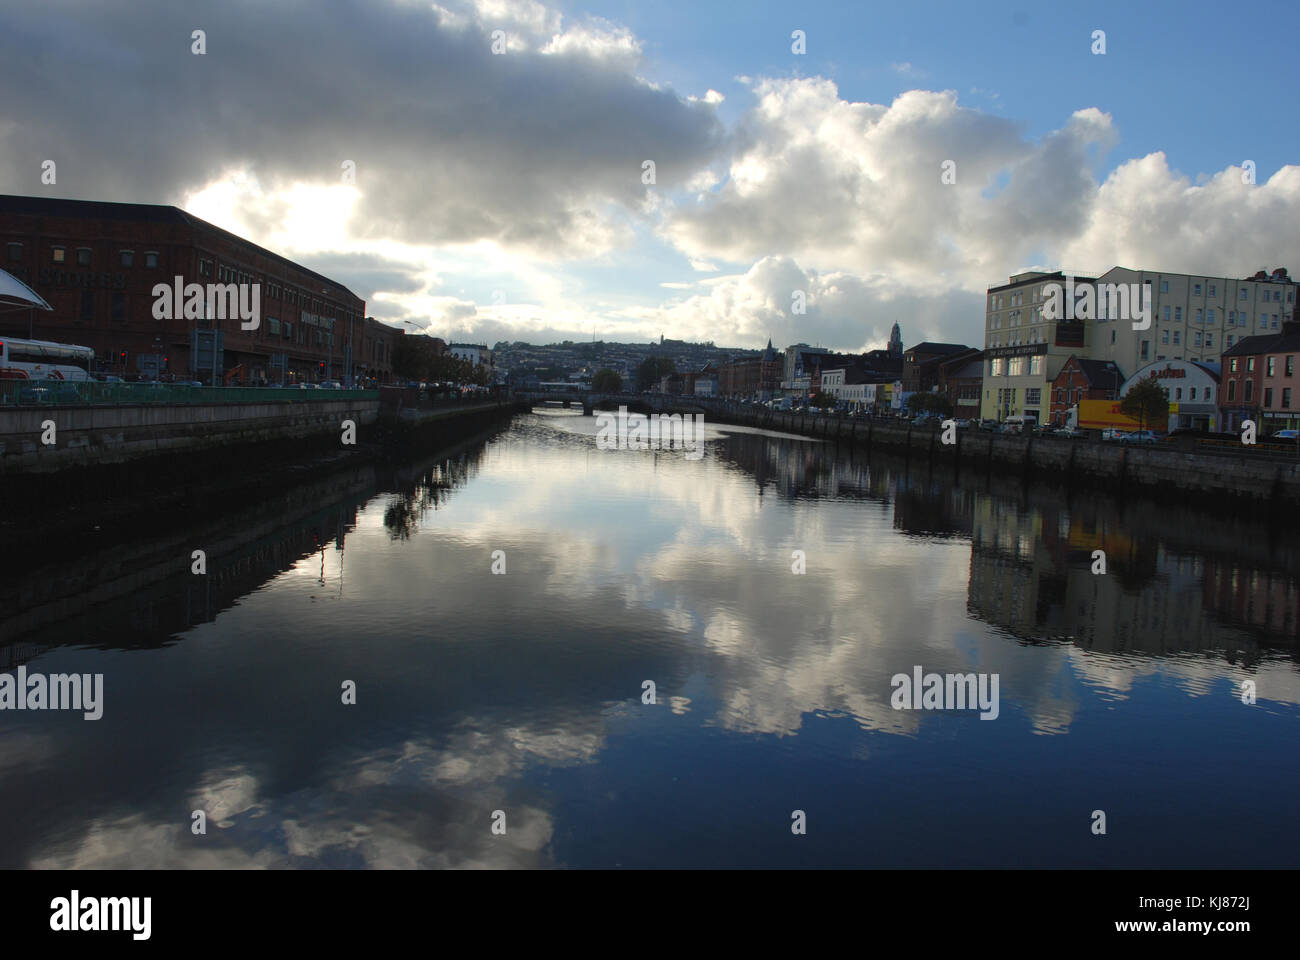 River Lee - Cork, Ireland - Stock Image